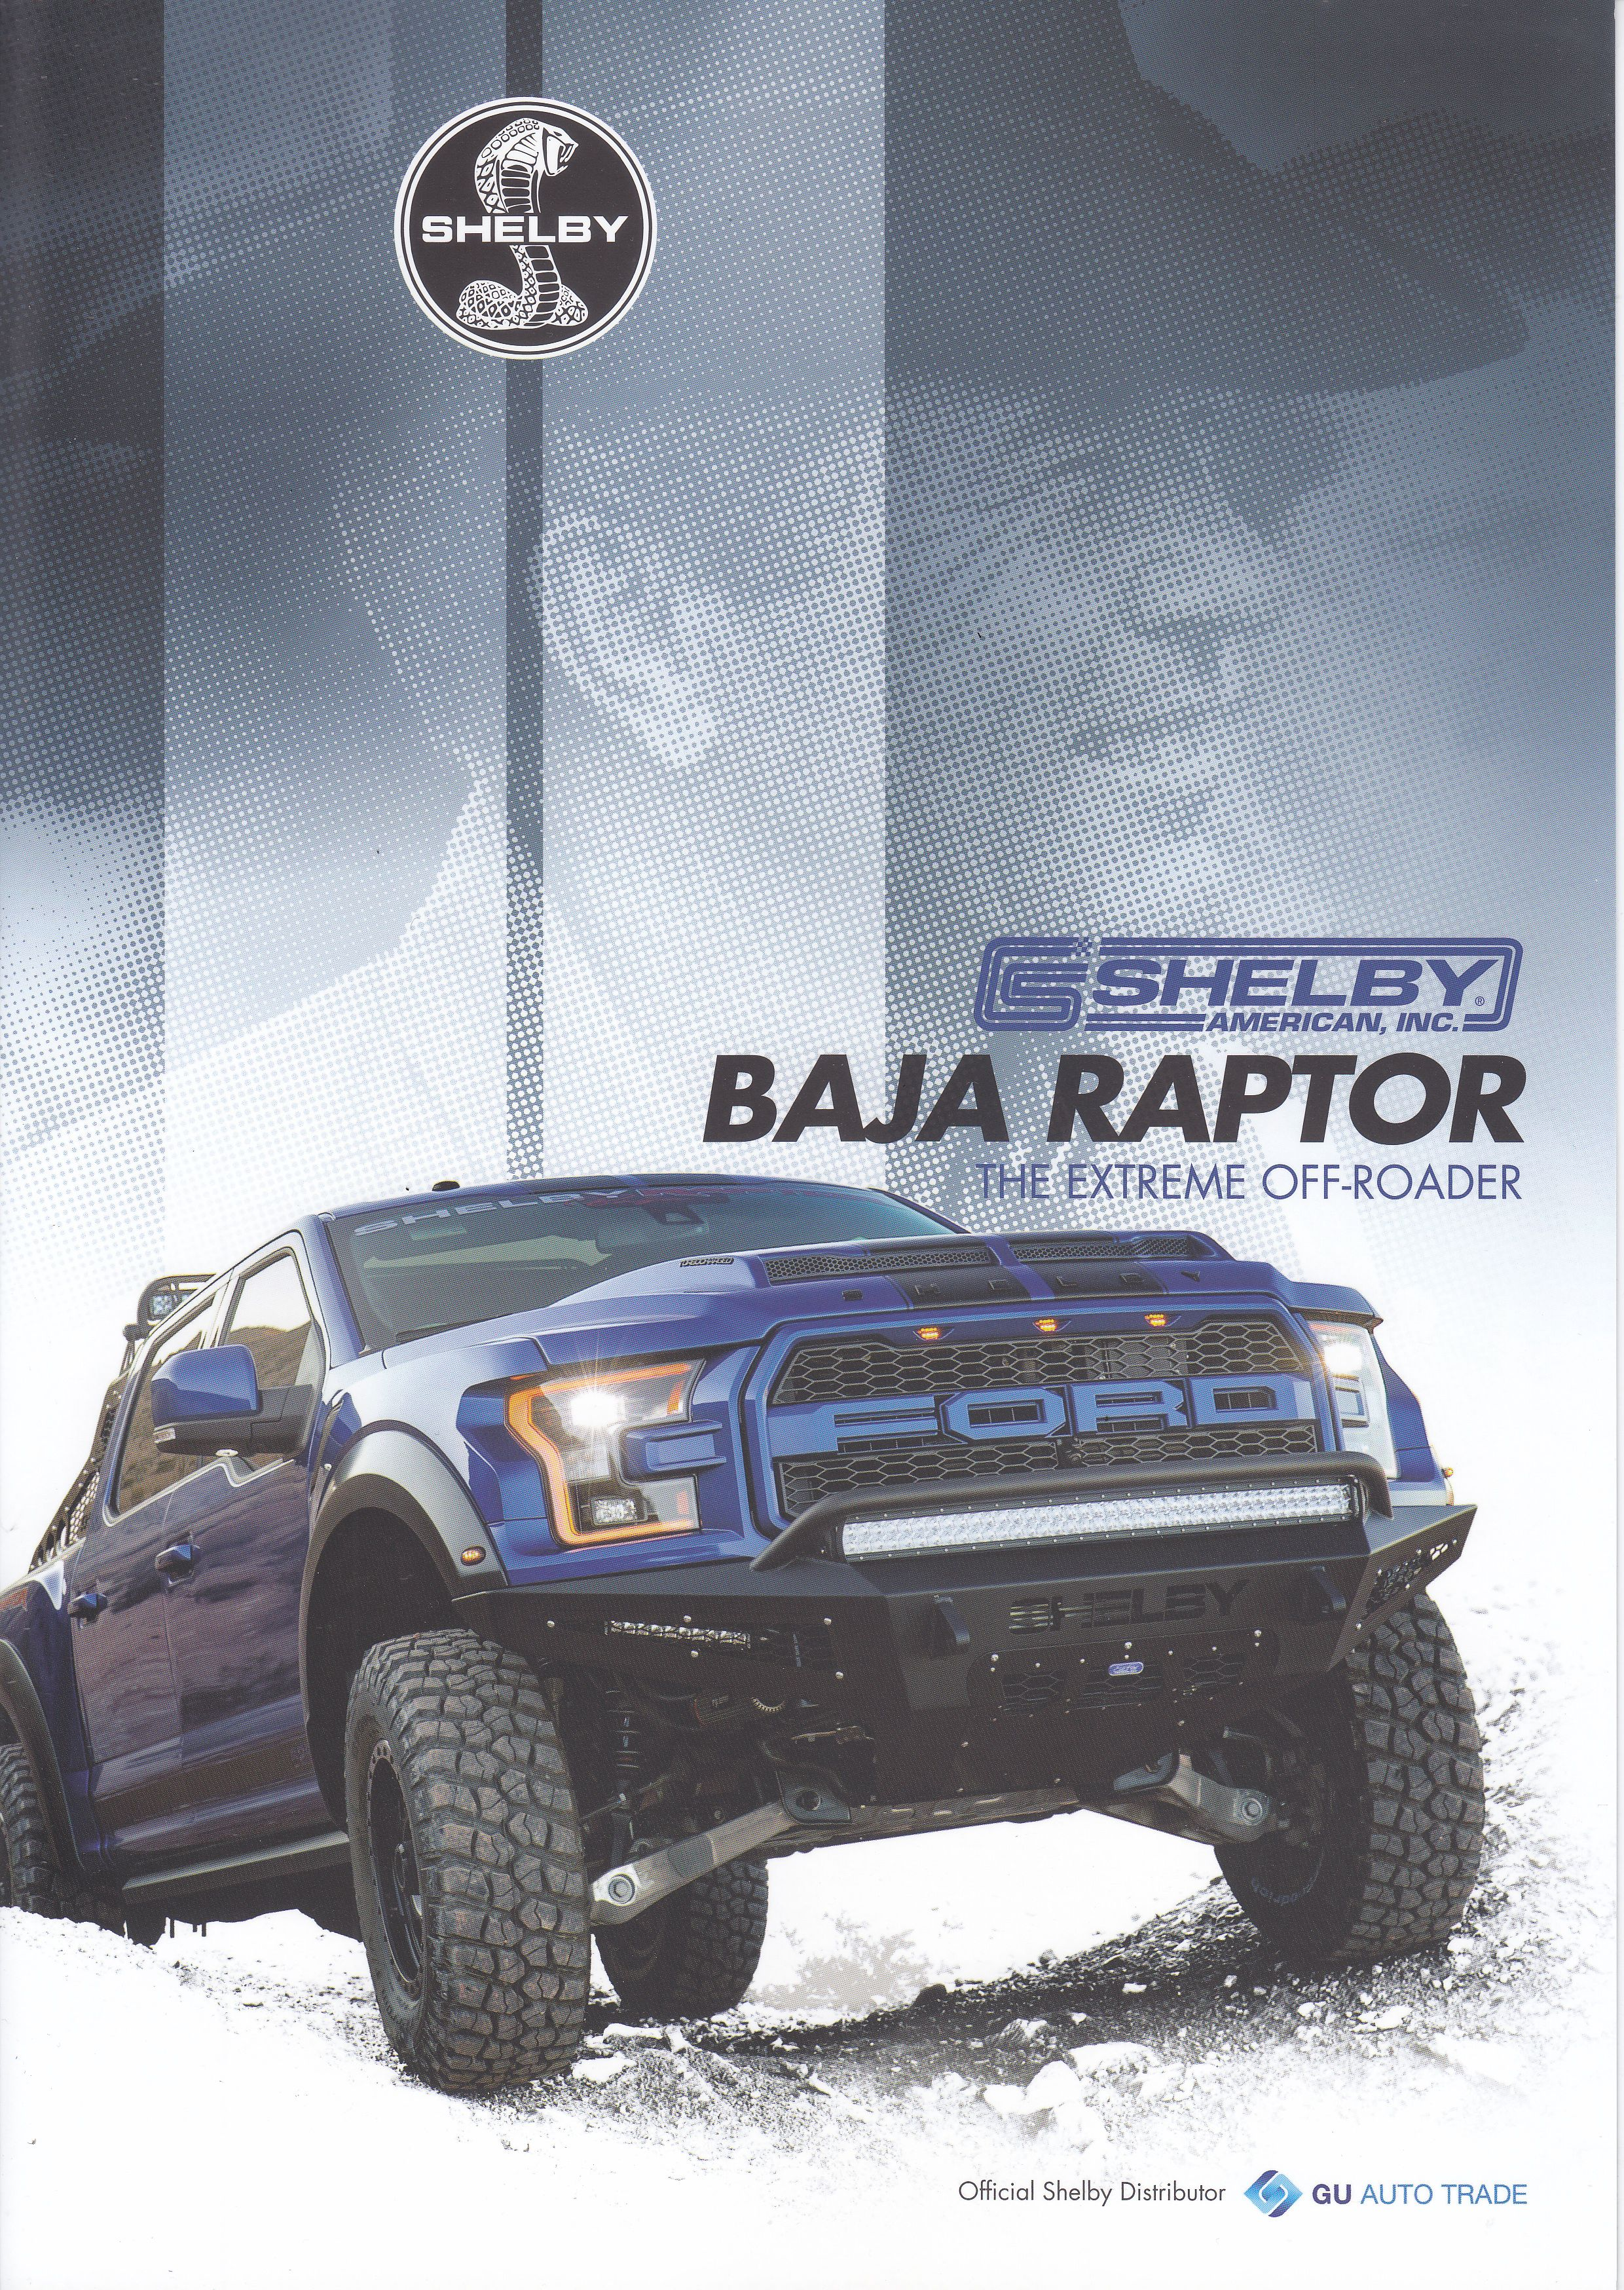 Shelby Baja Raptor 4 Page Brochure 2017 Dutch Issue In English